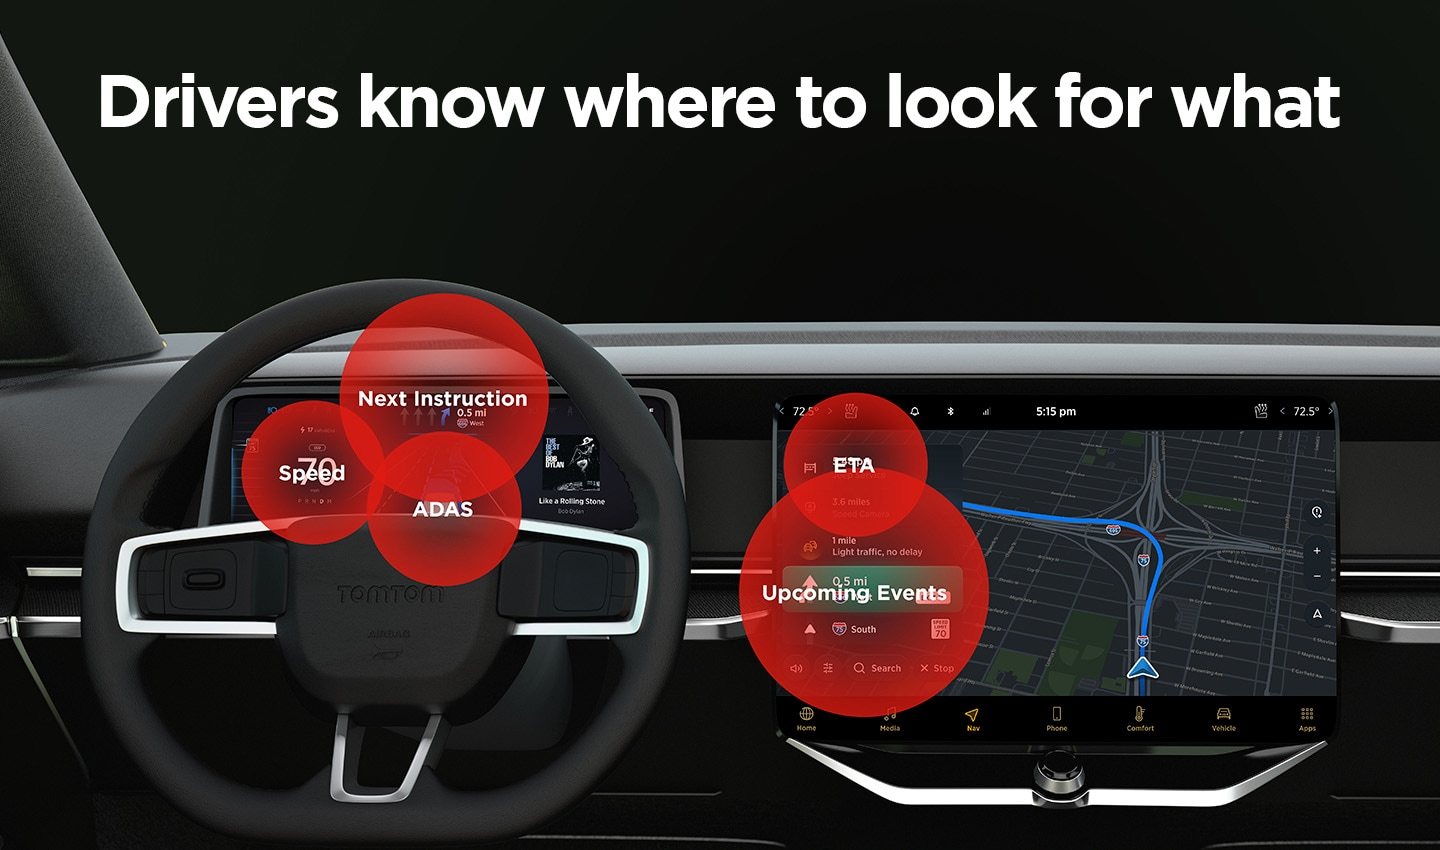 When display interfaces are designed as an entire ecosystem, drivers know where to look for information.